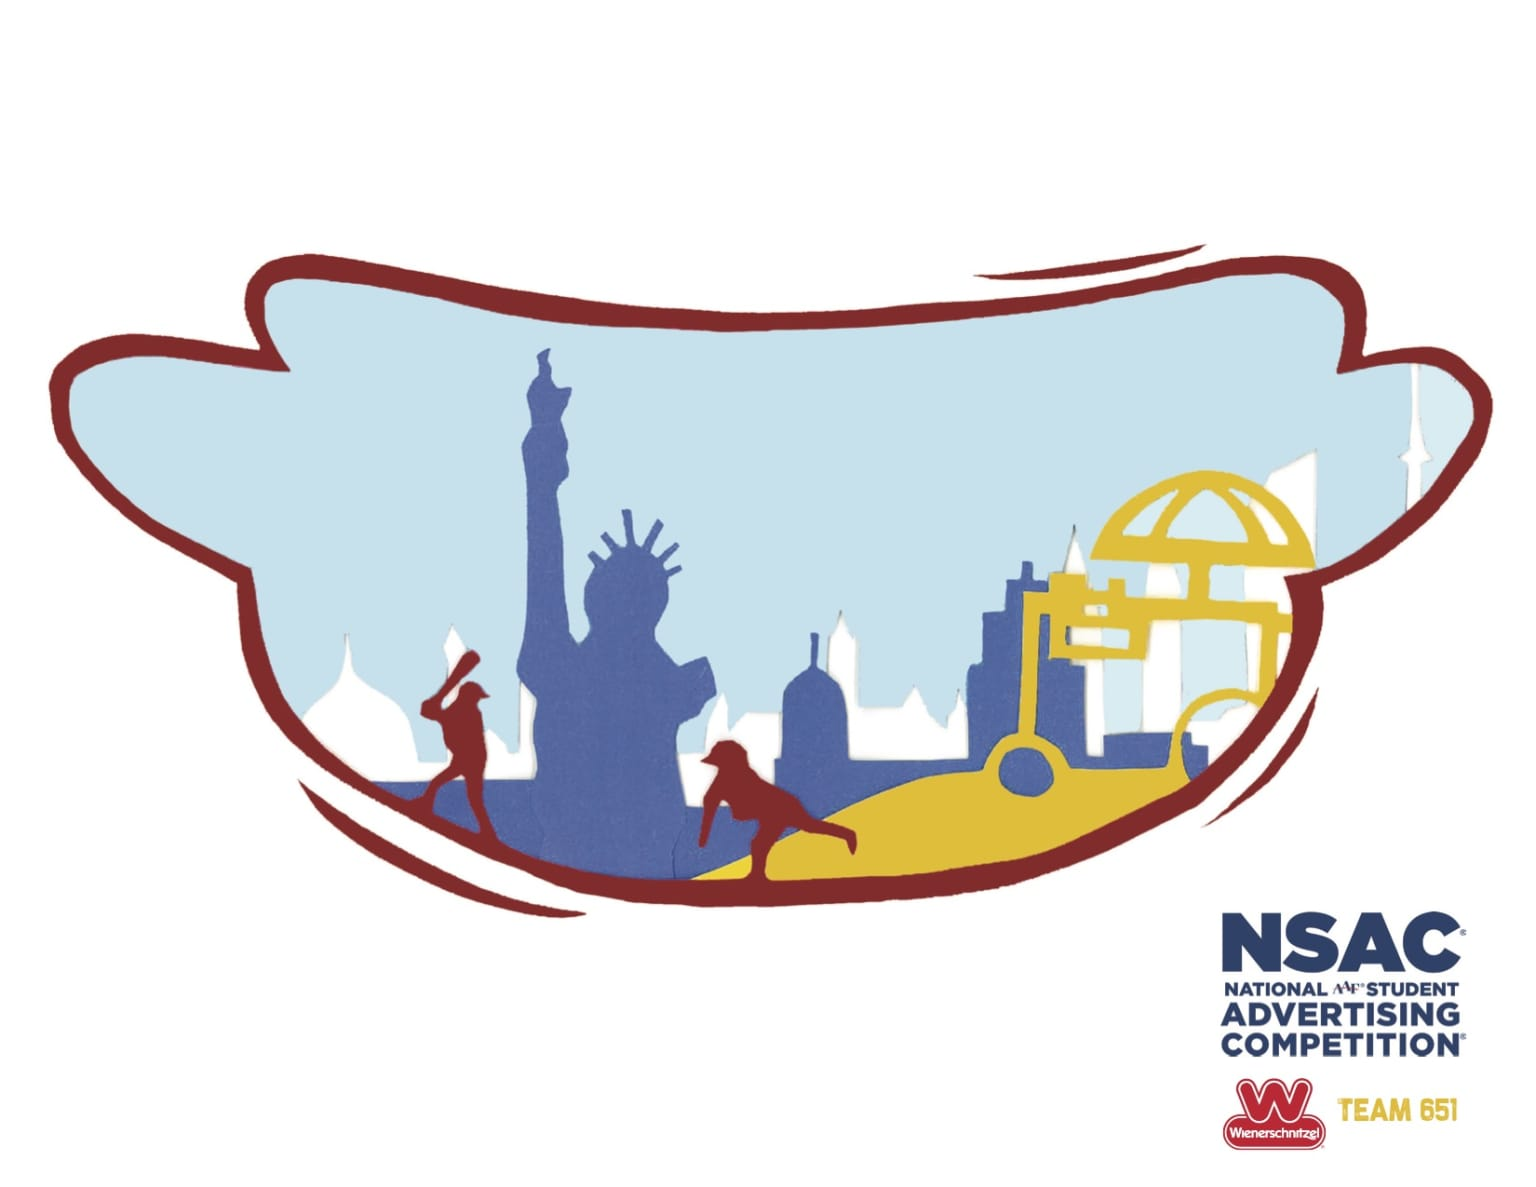 NSAC (National Student Advertising Competition)